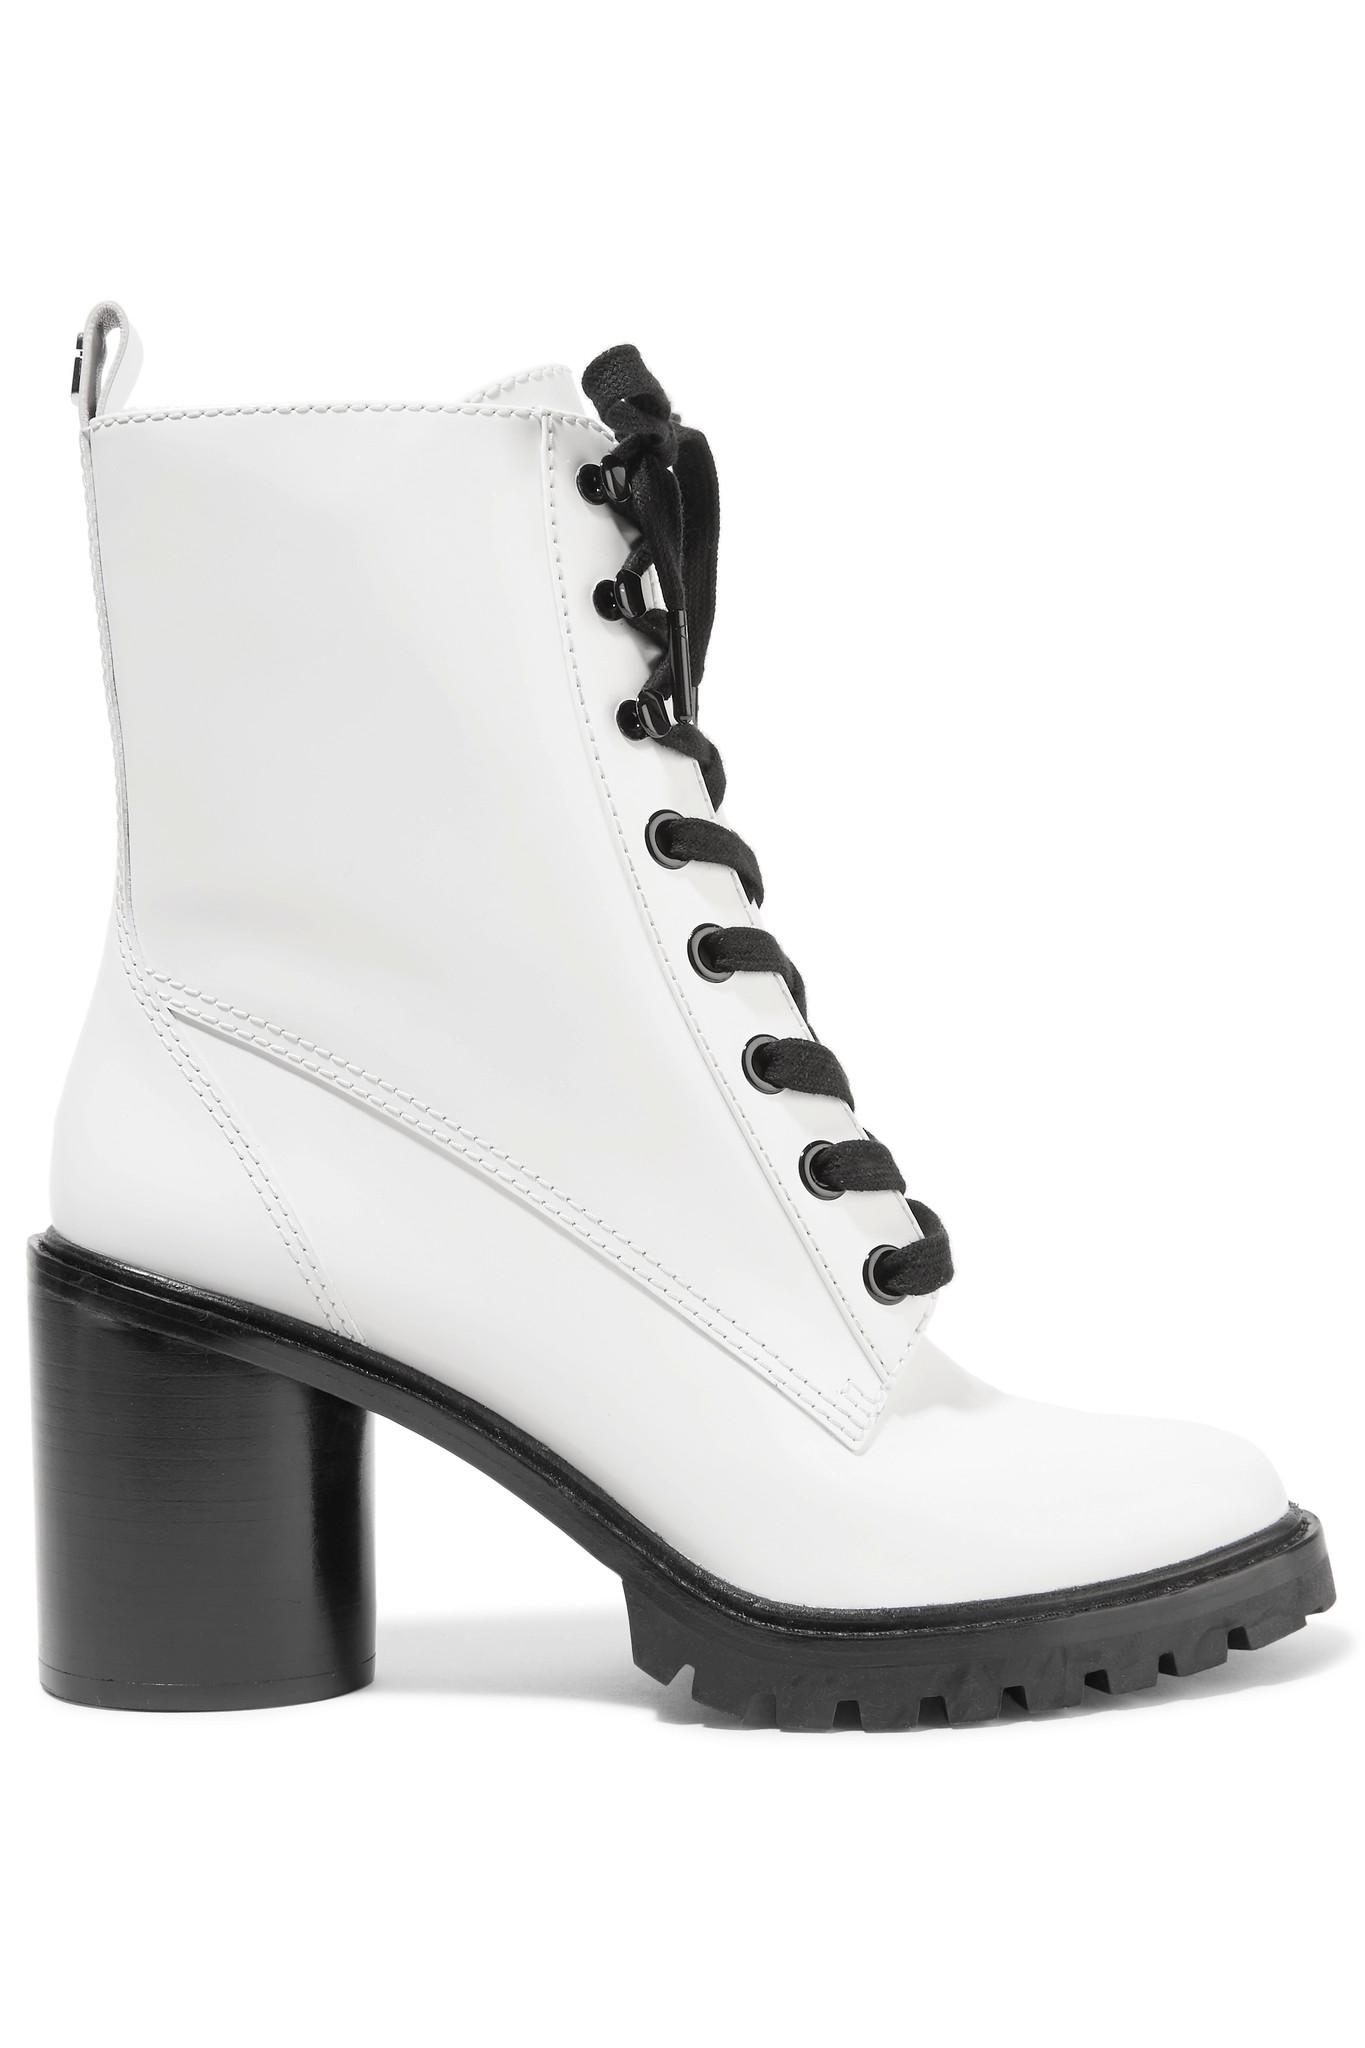 51621f81769 Lyst - Marc Jacobs Ryder Lace-up Polished-leather Ankle Boots in White